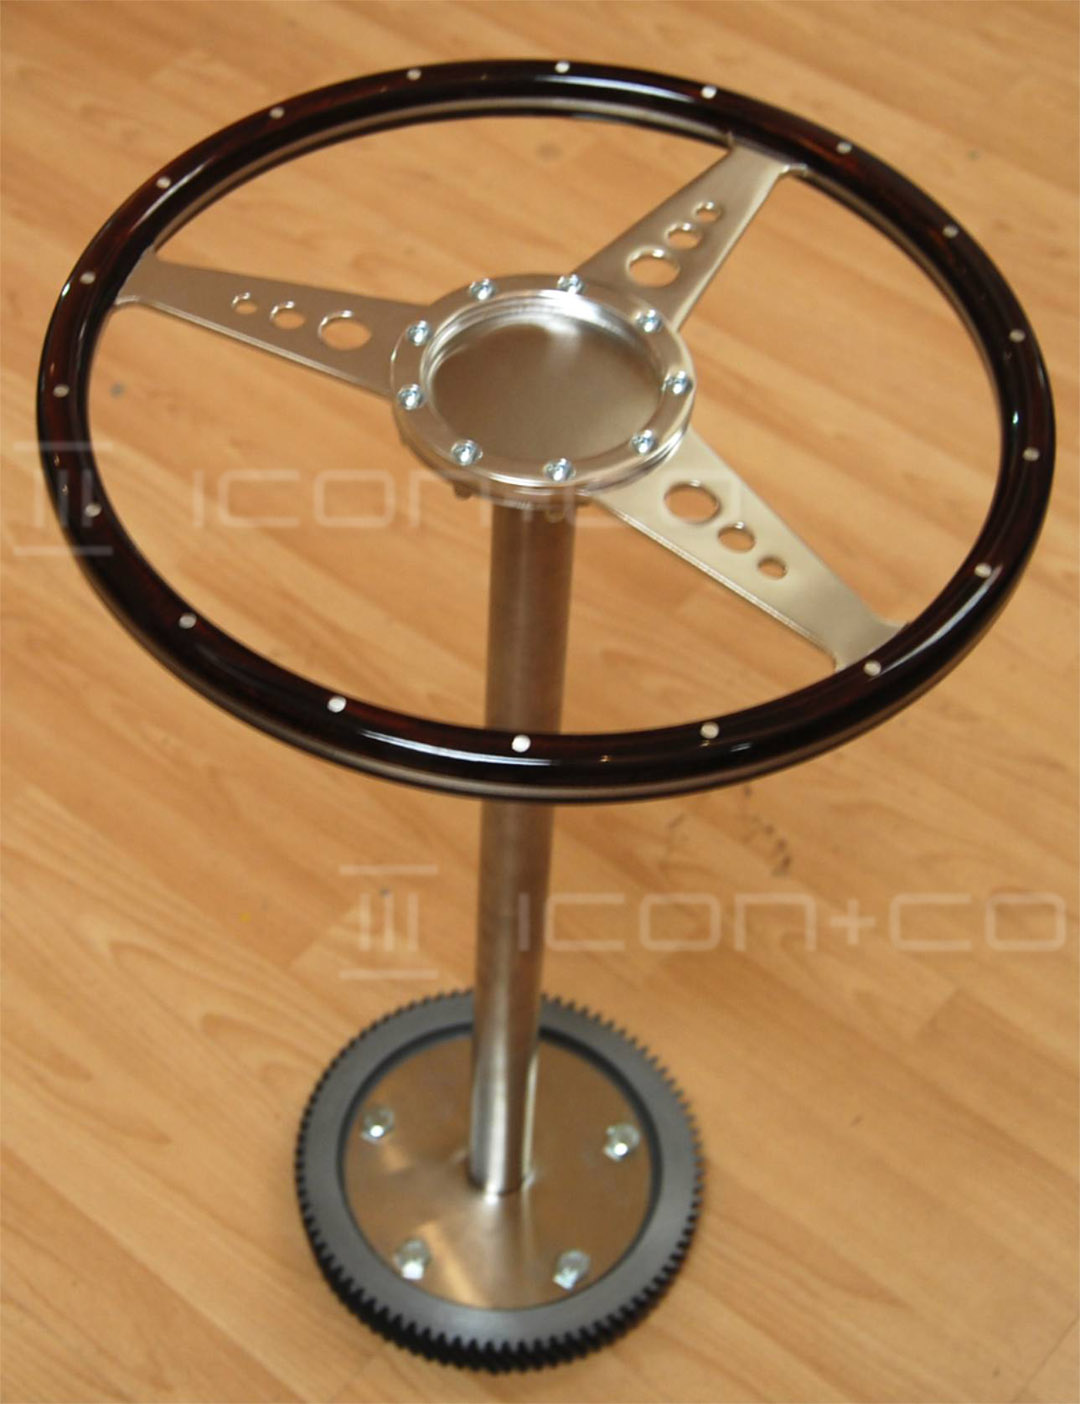 Men's fashion steering wheel display prop, Classic car themed retail display prop, steering wheel, gentleman's clothing tie display spinner, pos, VM, visual merchandising solutions, dunhill masculine window, cogs, gear wheel, cast moulded prop